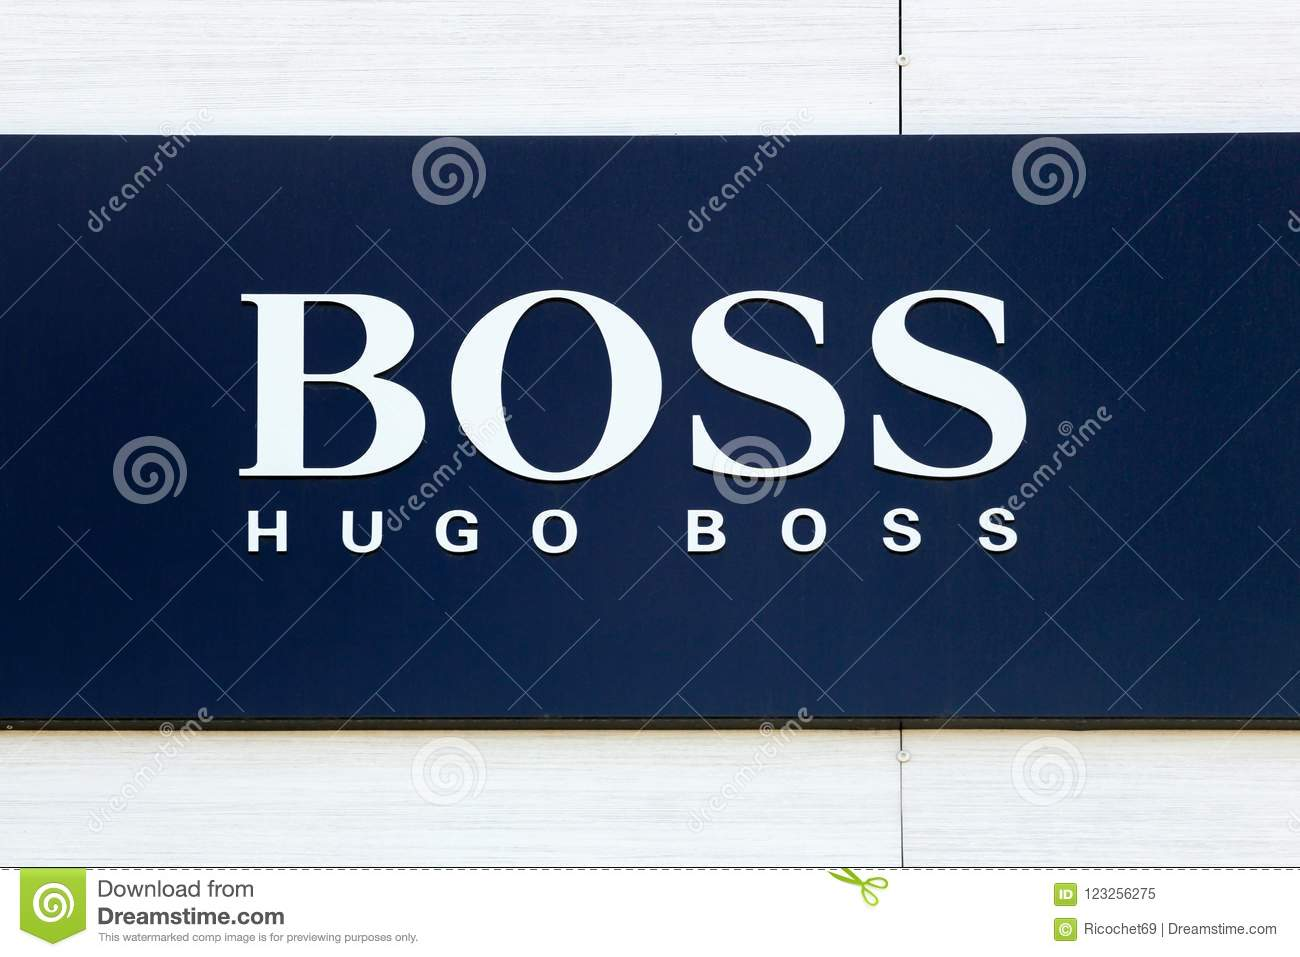 2fd487b58 Hugo Boss is a German luxury fashion house. It was founded in 1924 by Hugo  Boss and is headquartered in Metzingen, Germany